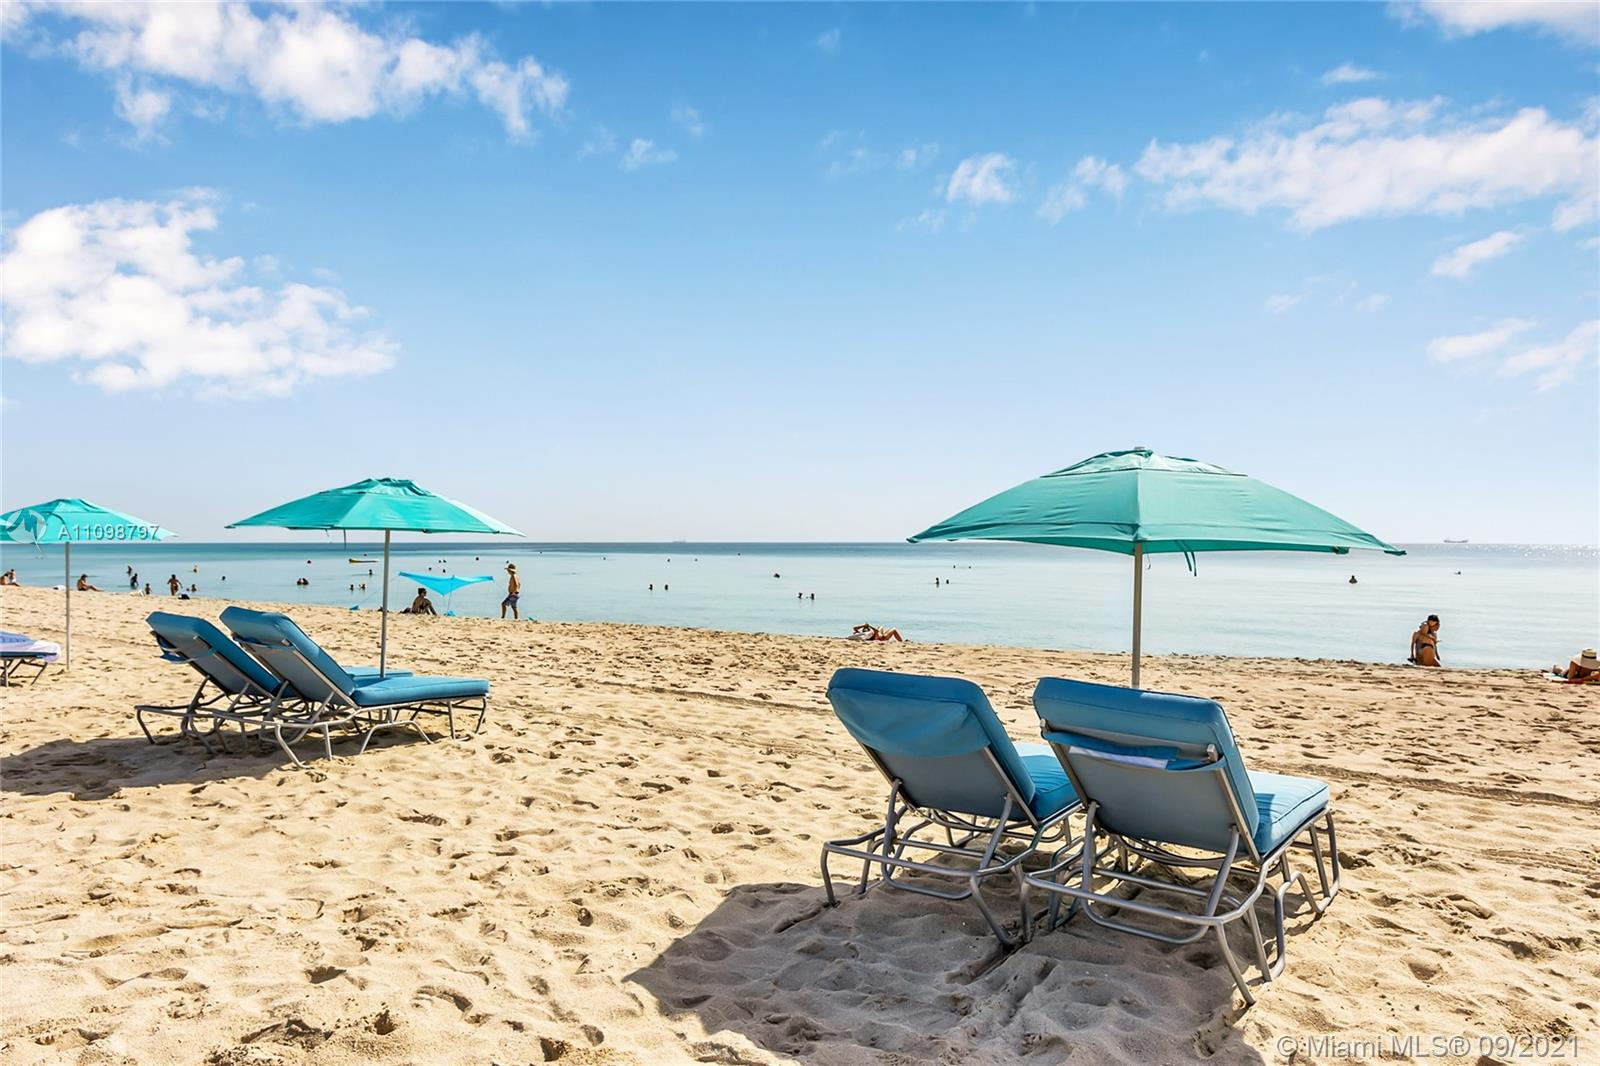 ON THE OCEAN WITH CHARM AND WARMTH BEYOND BELIEF! Corner residence at the award winner Michael Graves Oceanfront Luxury Condo, affording both direct ocean and bay/city views, marble floors throughout, marble bathrooms, top of the line appliances including Sub Zero, Italian cabinetry and custom white window treatments. New Mother of Pearl salt water pool, upgraded amenities including new steam bath, sauna, gym, Peloton Bike and private beach area exclusively for its residents with water & towel service.  Other amenities include a barbecue area, social room, air condition bike and storage room and a full professional & friendly staff to serve you! HAPPINESS IS WAKING UP TO VIEWS OF THE OCEAN. MAKE EACH DAY A BEACH DAY A LA MICHAEL GRAVES STYLE!